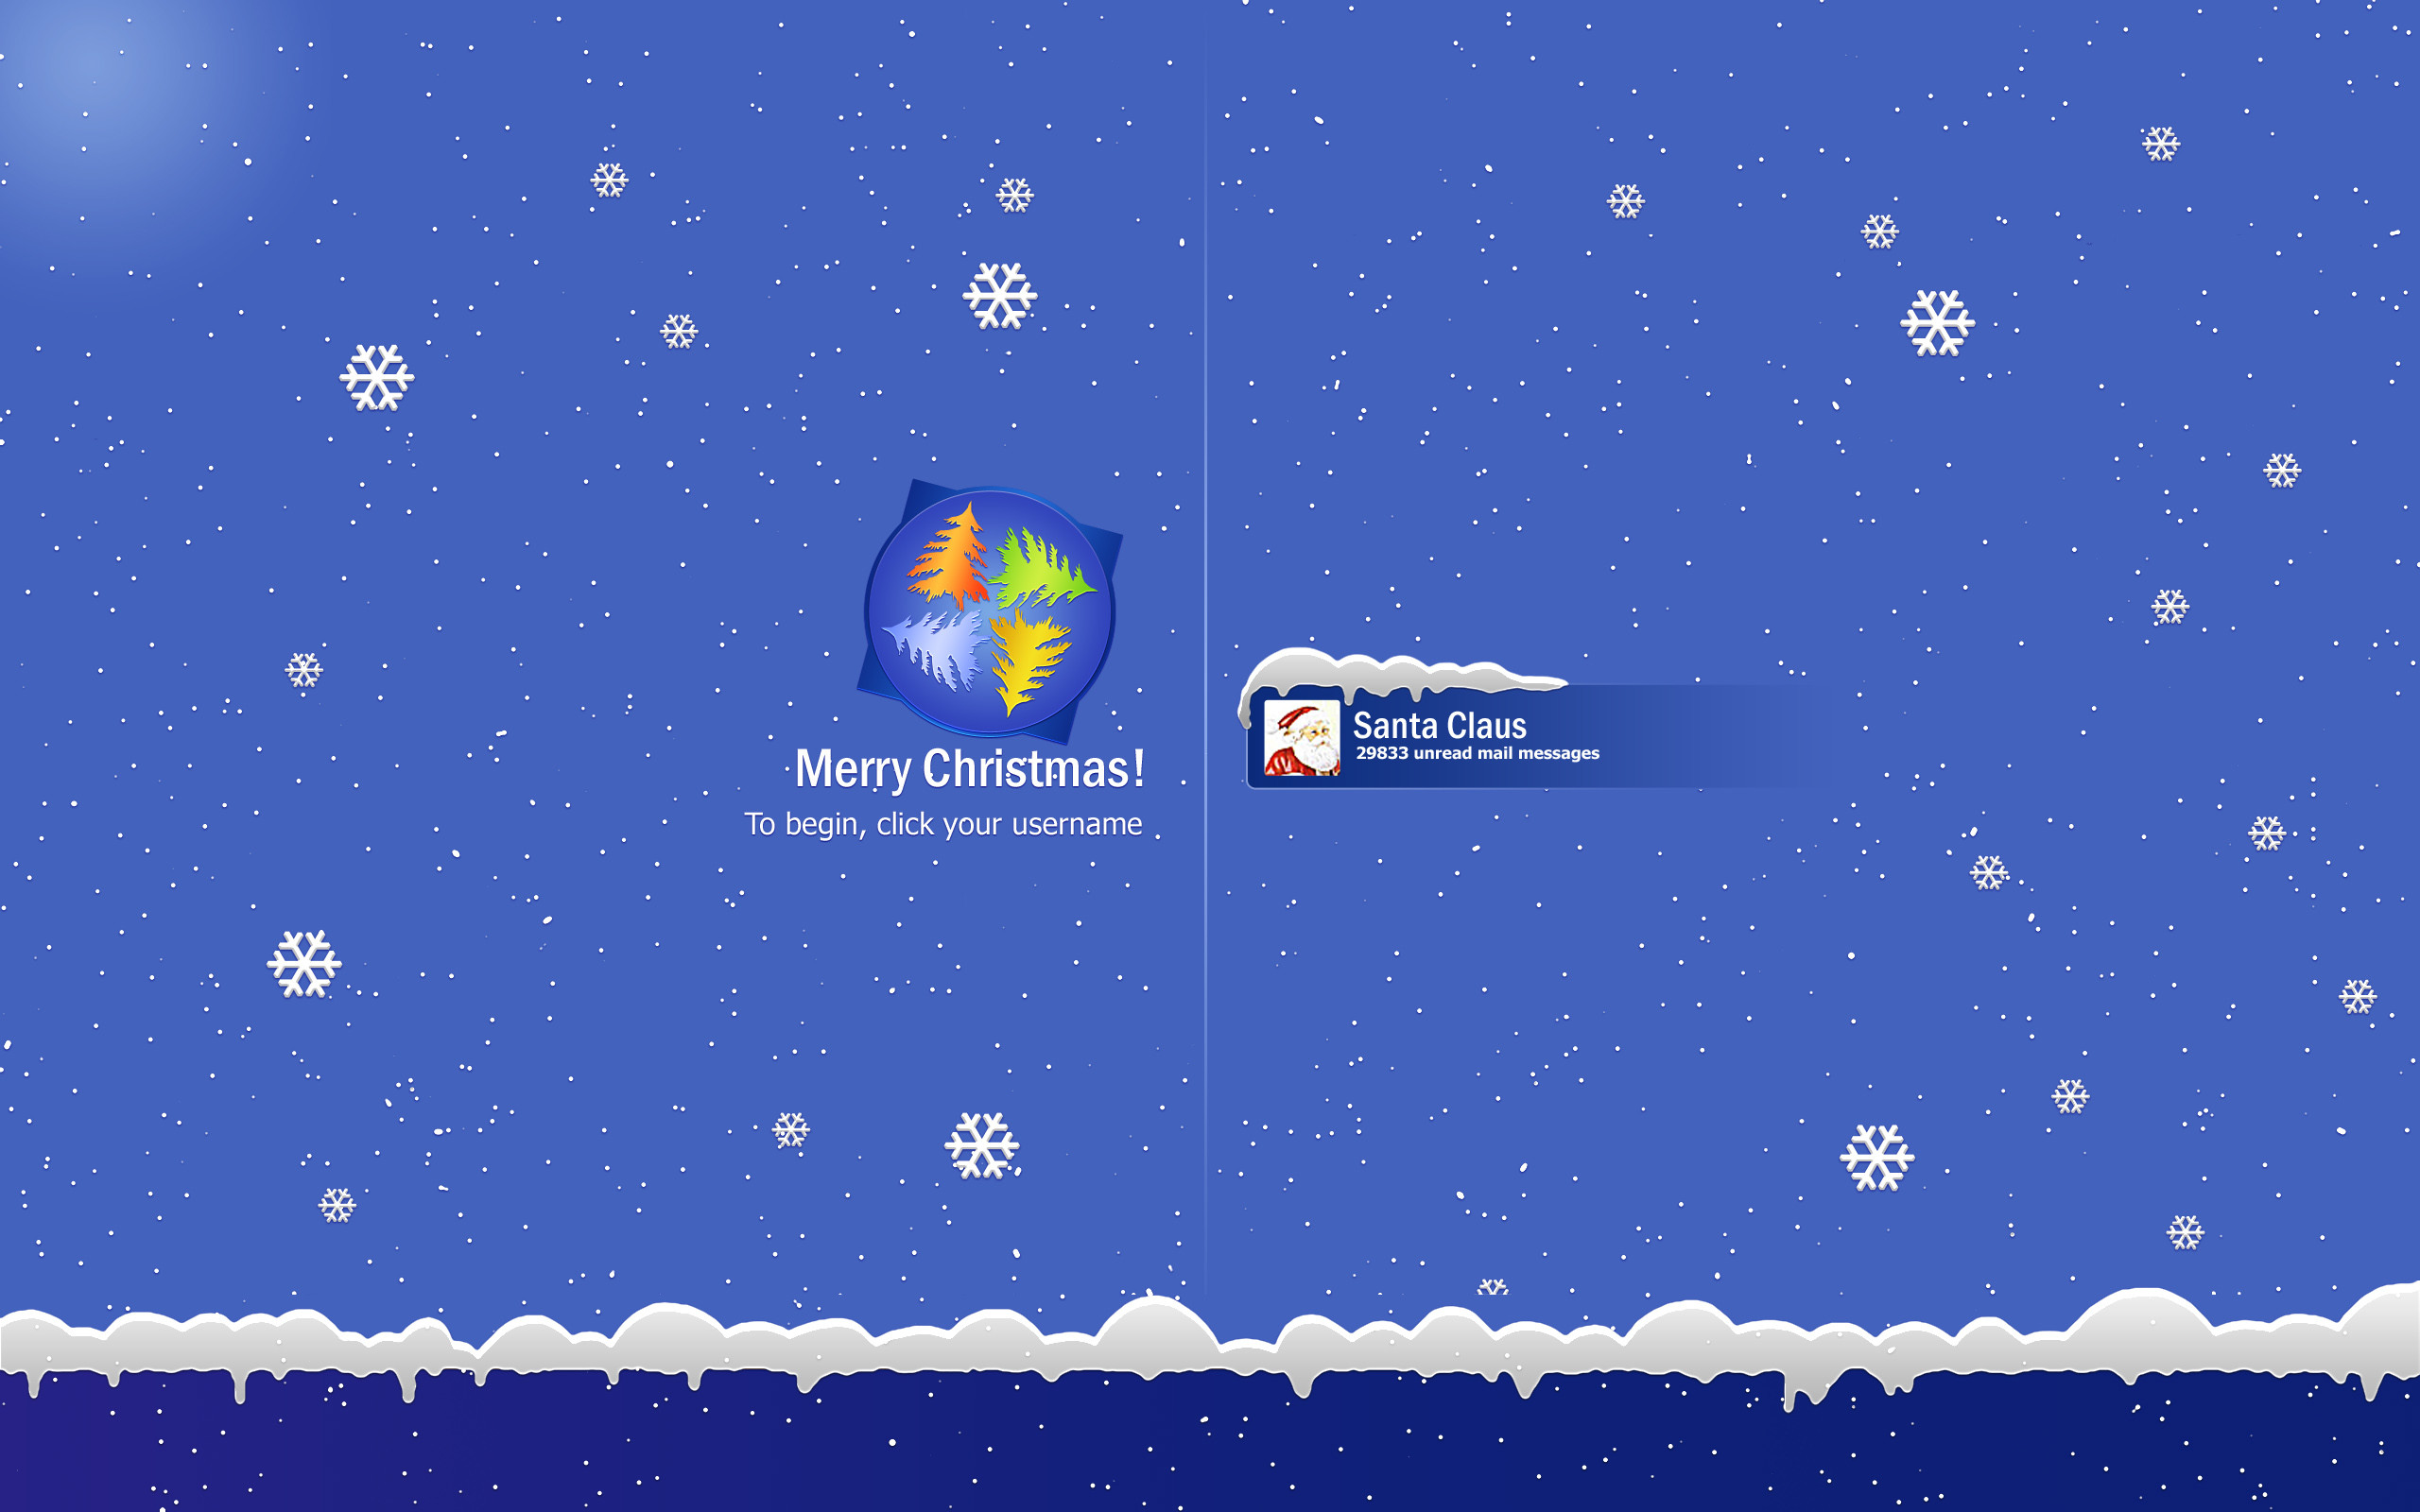 merry christmas computer wallpaper (67+ images)